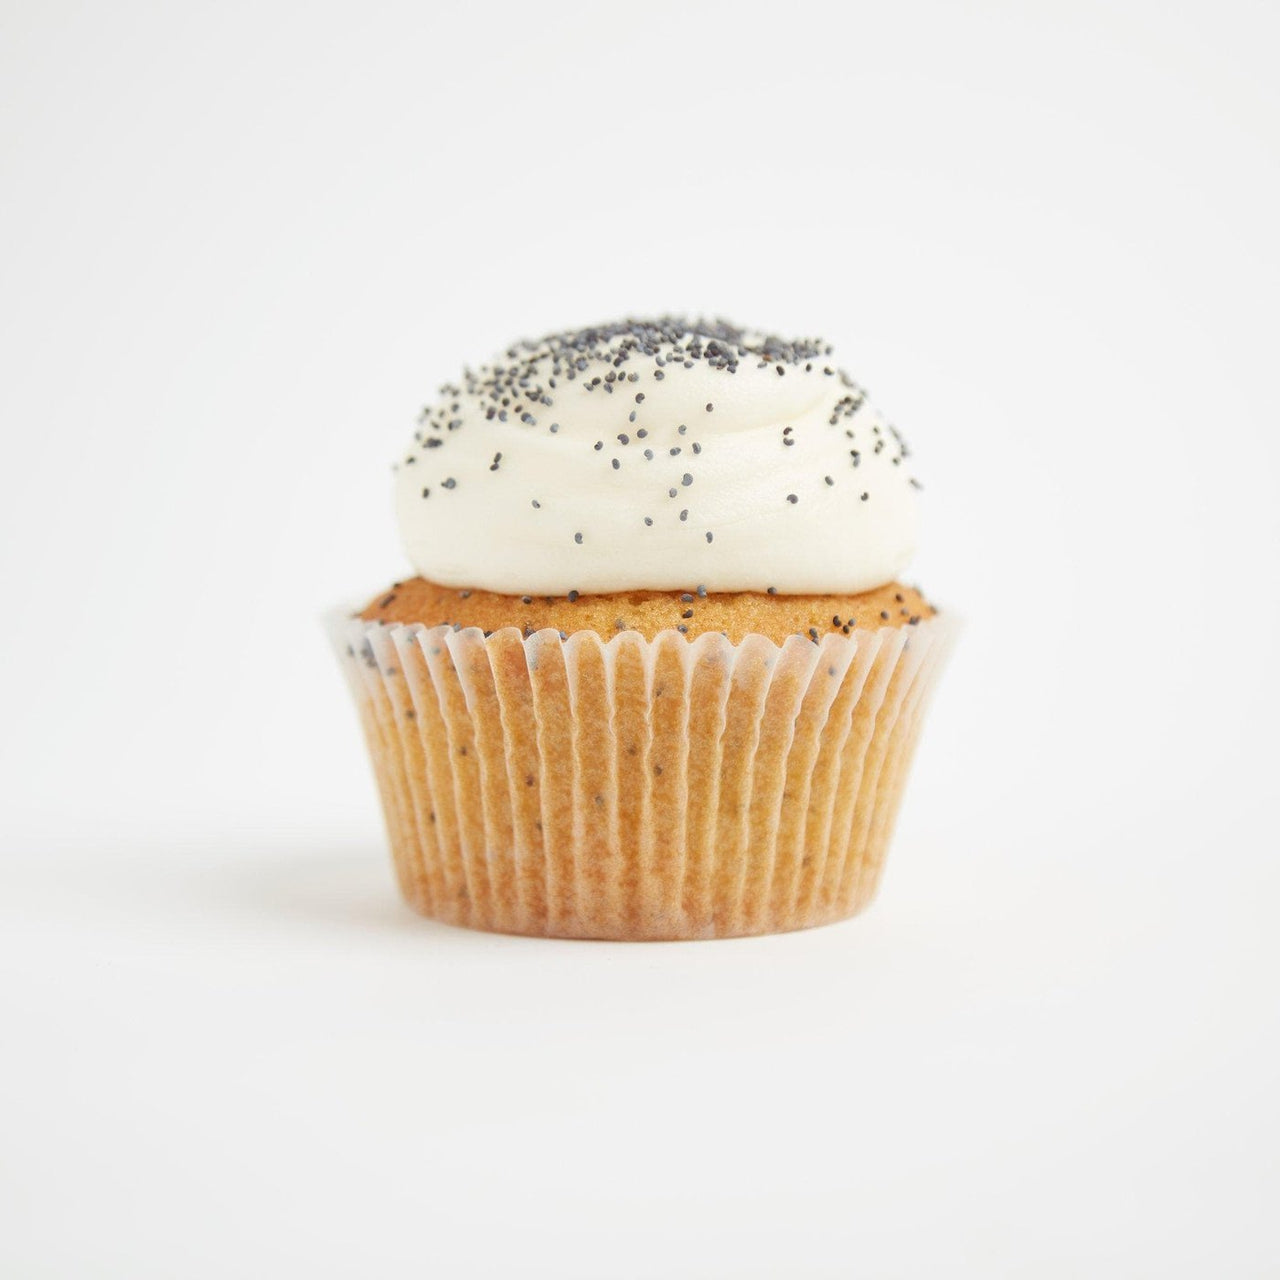 Gluten-Free Lemon & Poppyseed Cupcakes by Crumbs & Doilies